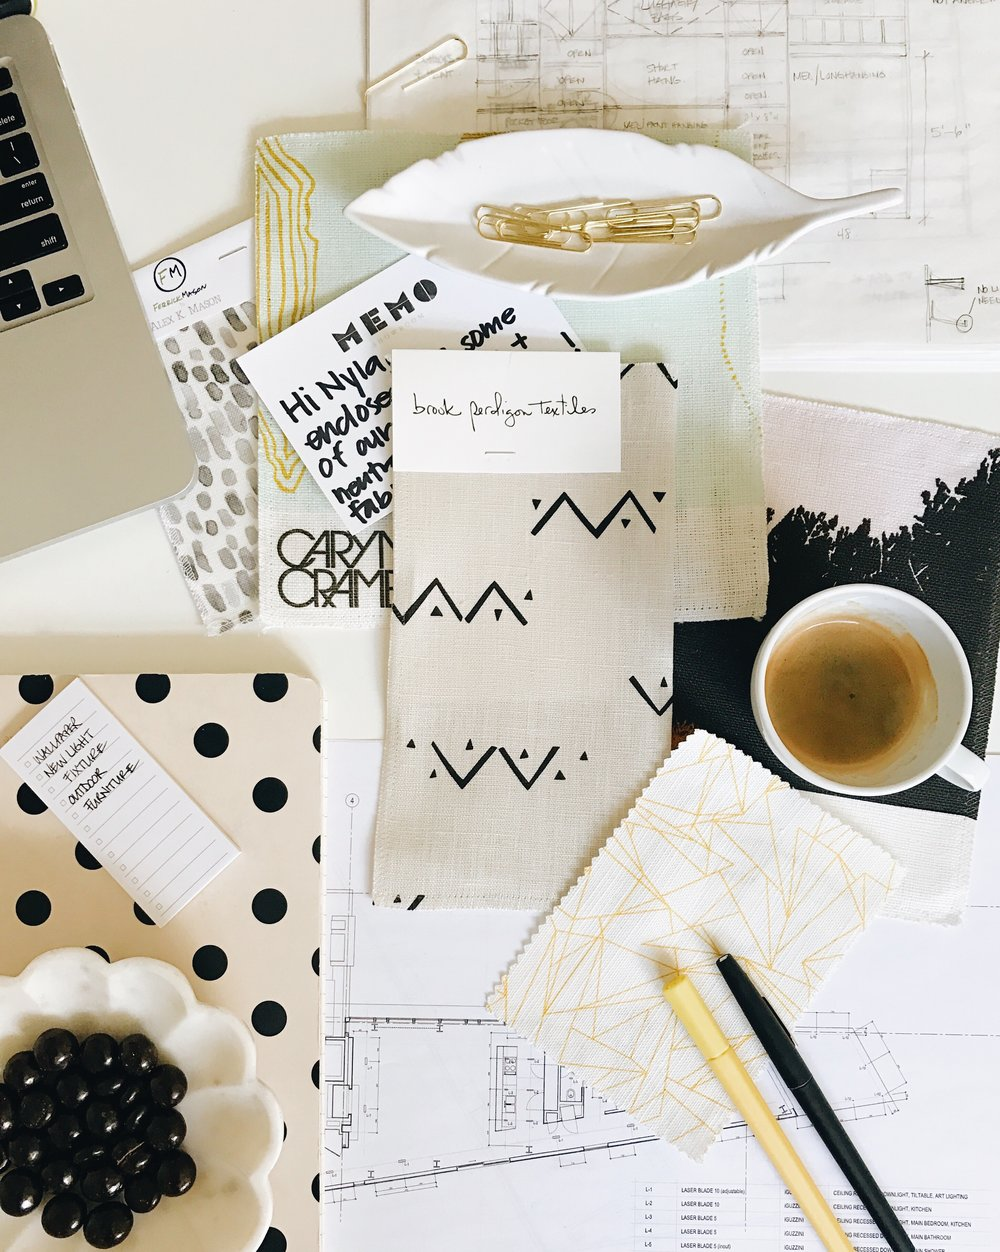 What's On Nyla's Desk, Nyla Free Designs Inc.